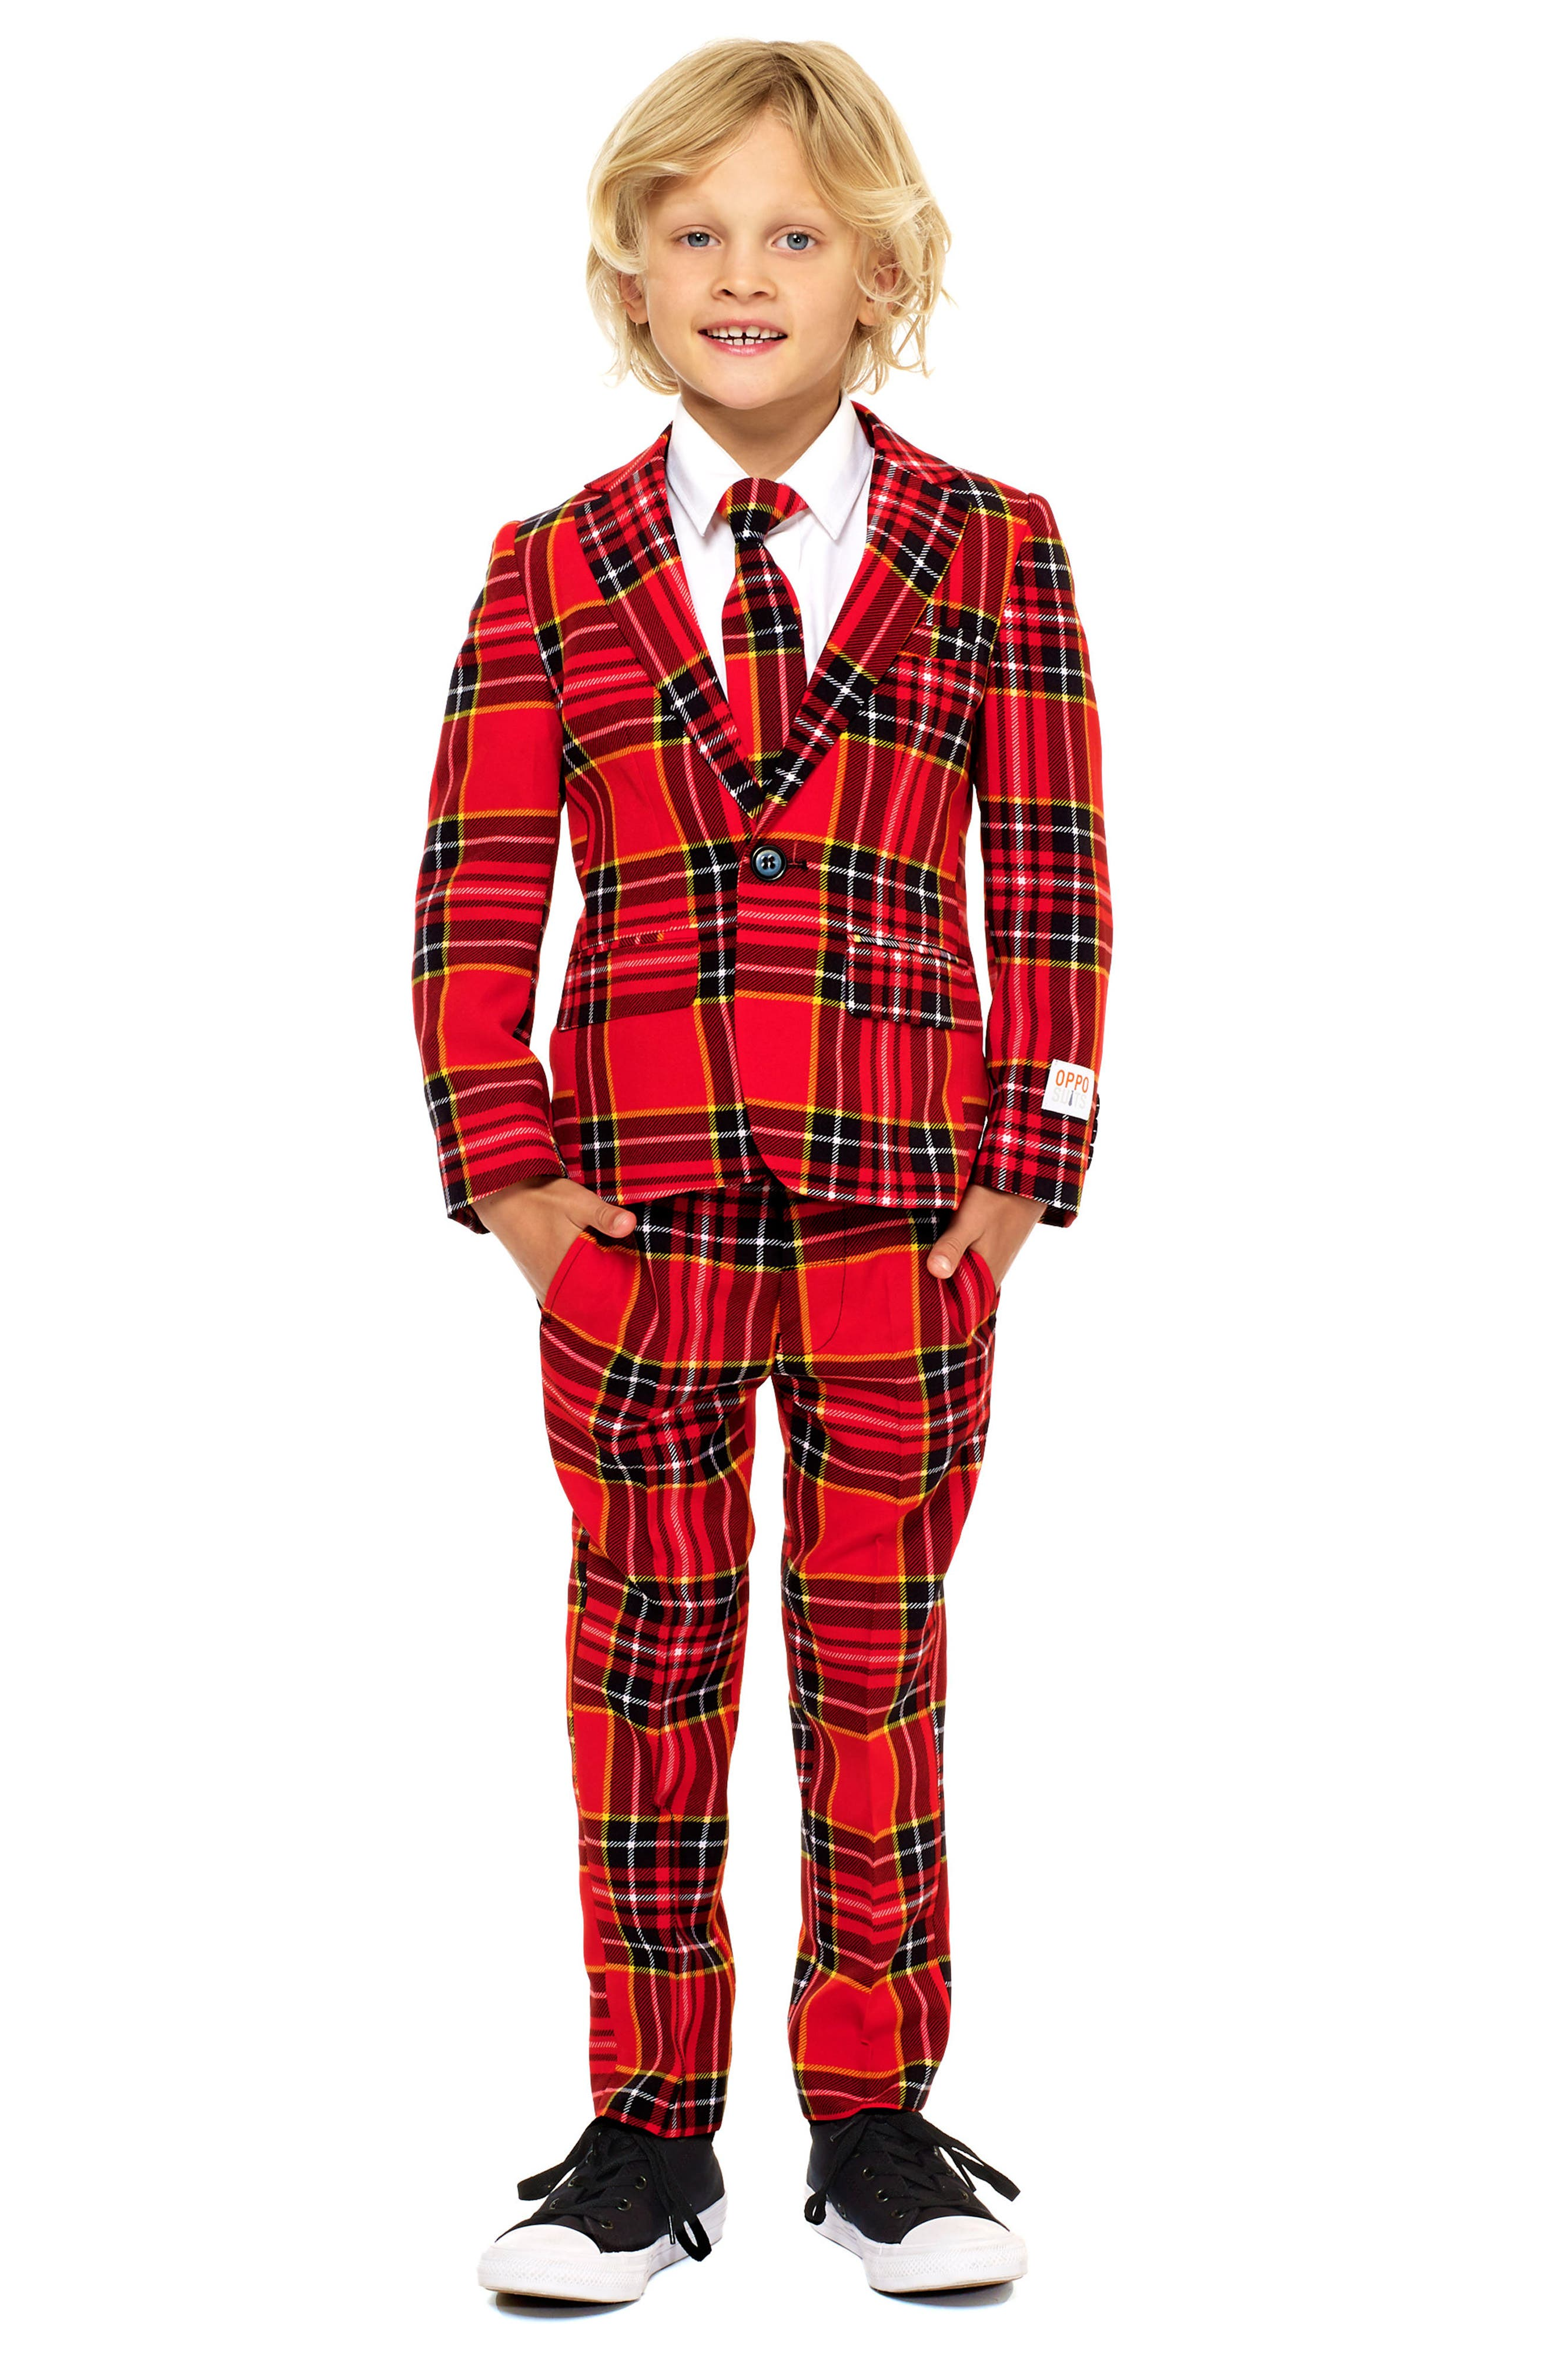 Main Image - Oppo Lumberjack Two-Piece Suit with Tie (Toddler Boys, Little Boys & Big Boys)